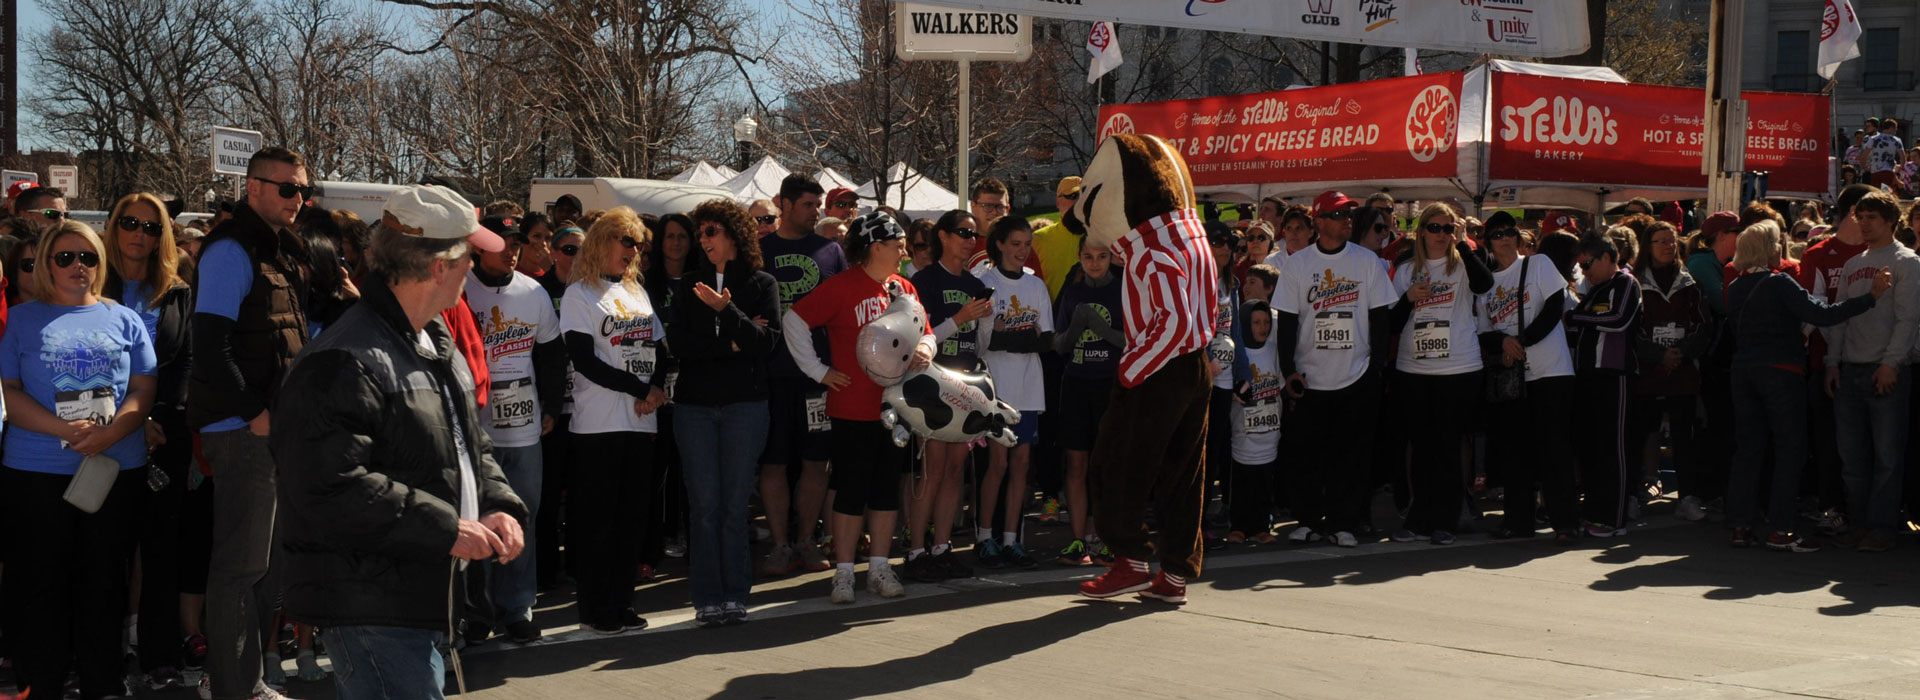 Start of the Race With Bucky Badger In The Center of the Photo